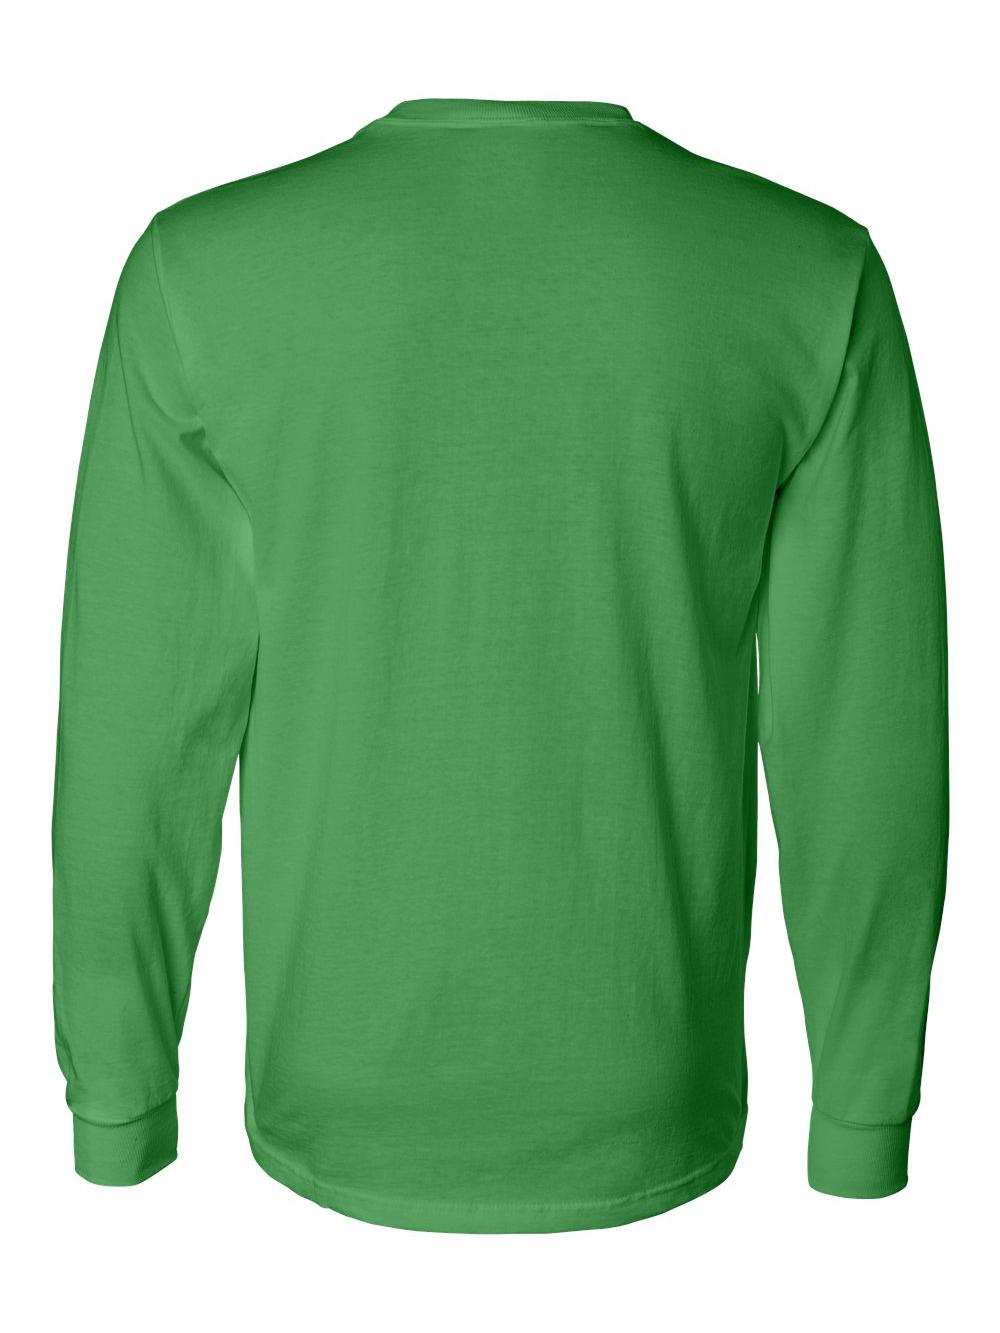 Fruit-of-the-Loom-HD-Cotton-Long-Sleeve-T-Shirt-4930R thumbnail 40